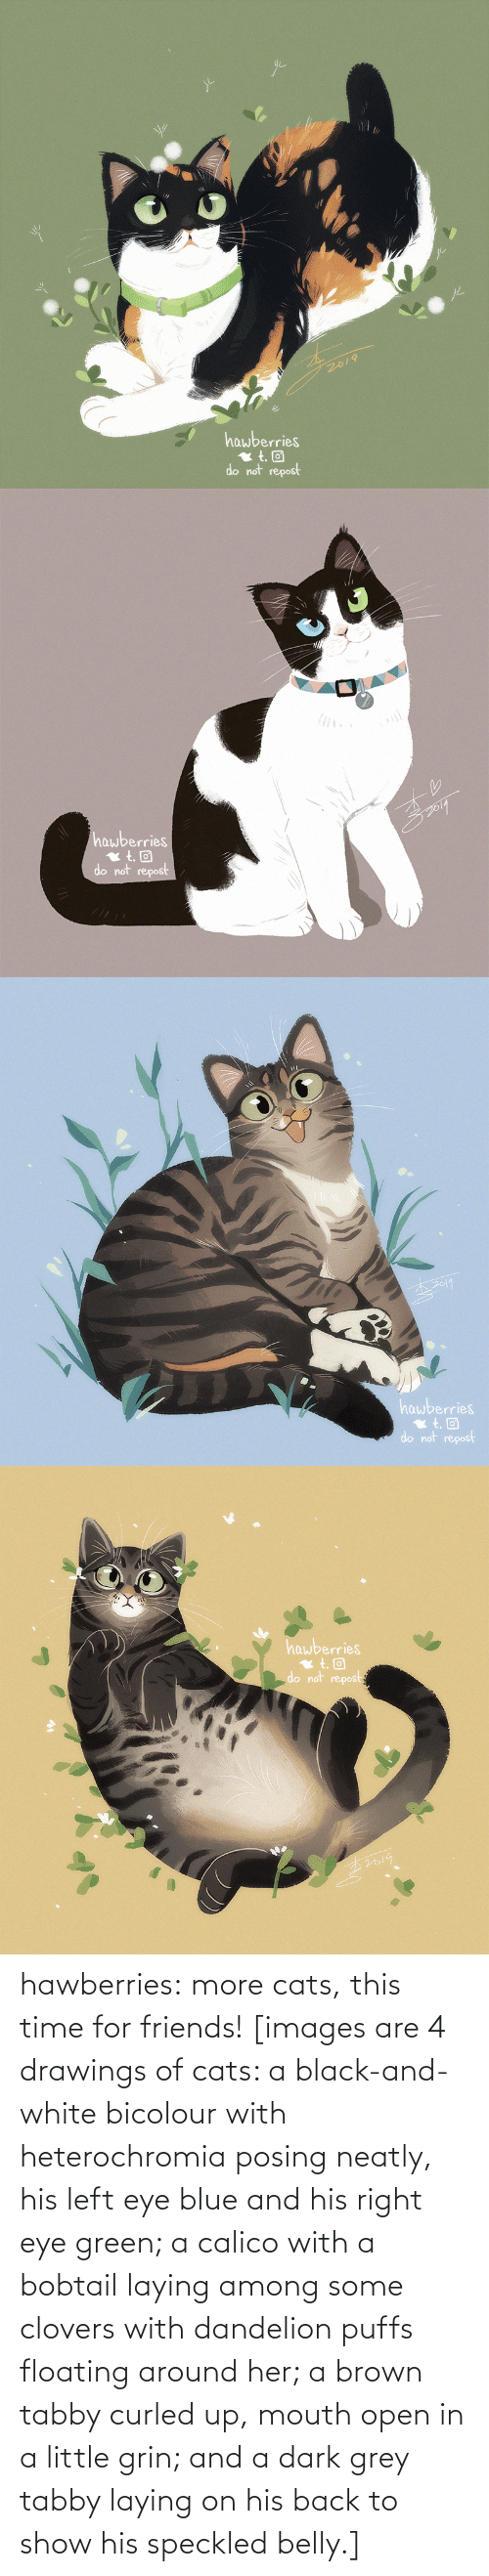 mouth: 2019  hawberries  do not repost   hawberries  do not repost   hawberries  do not repost   hawberries  do not repost hawberries: more cats, this time for friends! [images are 4 drawings of cats: a black-and-white bicolour with heterochromia posing neatly, his left eye blue and his right eye green; a calico with a bobtail laying among some clovers with dandelion puffs floating around her; a brown tabby curled up, mouth open in a little grin; and a dark grey tabby laying on his back to show his speckled belly.]